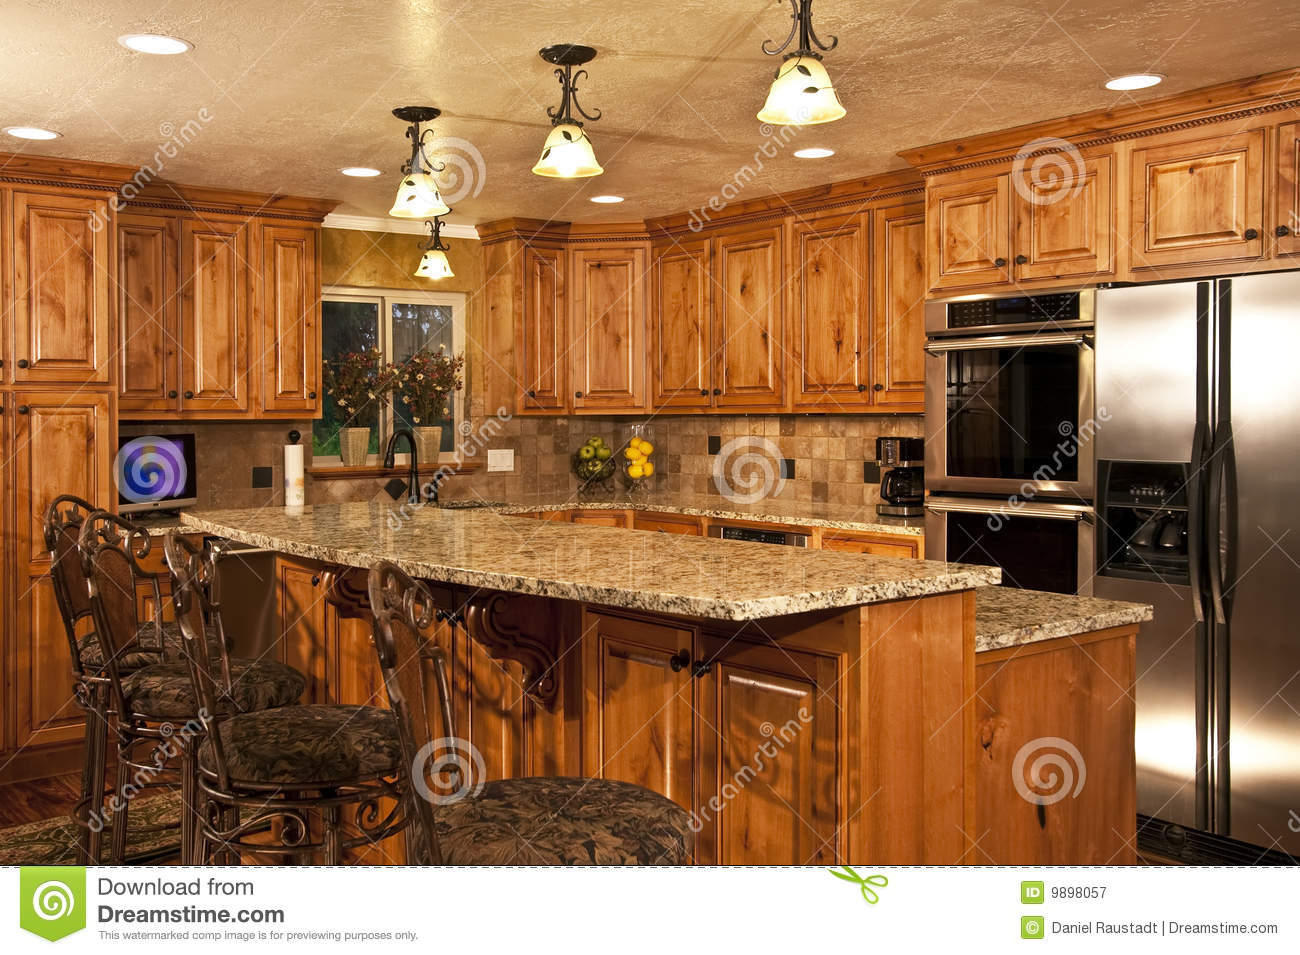 New Home Kitchen With Island Royalty Free Stock